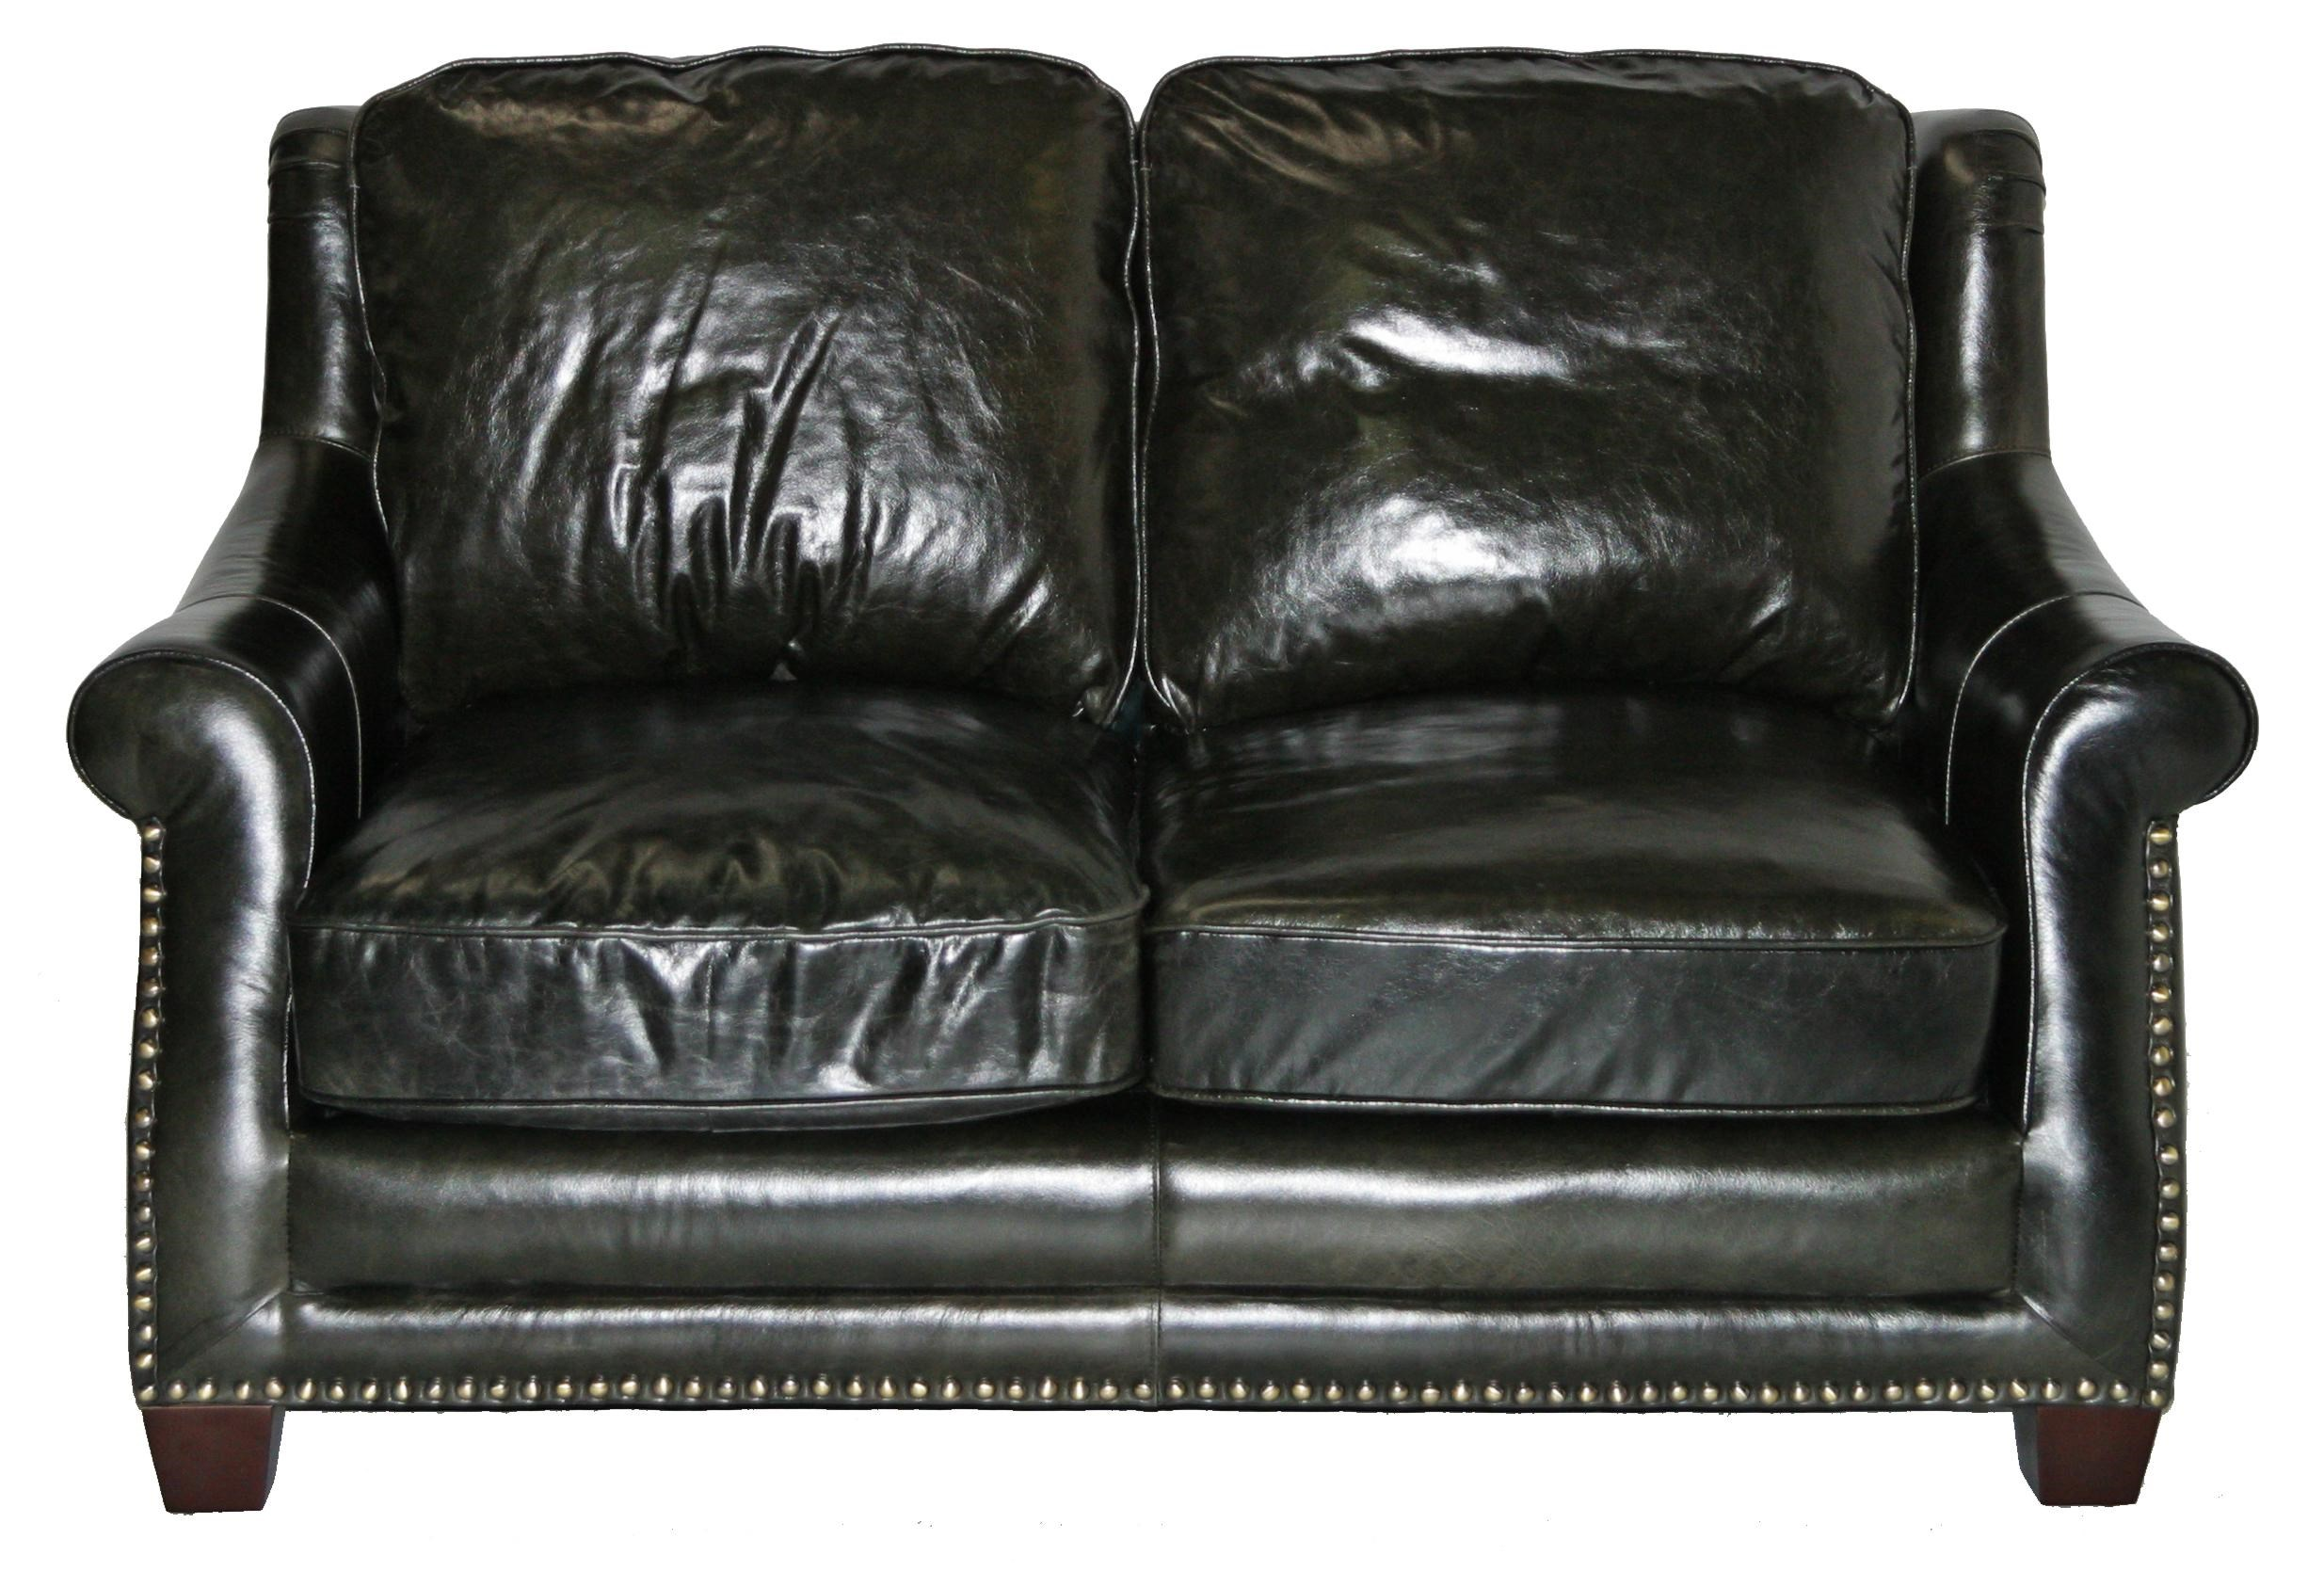 Buchanan Leather Loveseat W/ Rolled Arms By Leather Italia USA